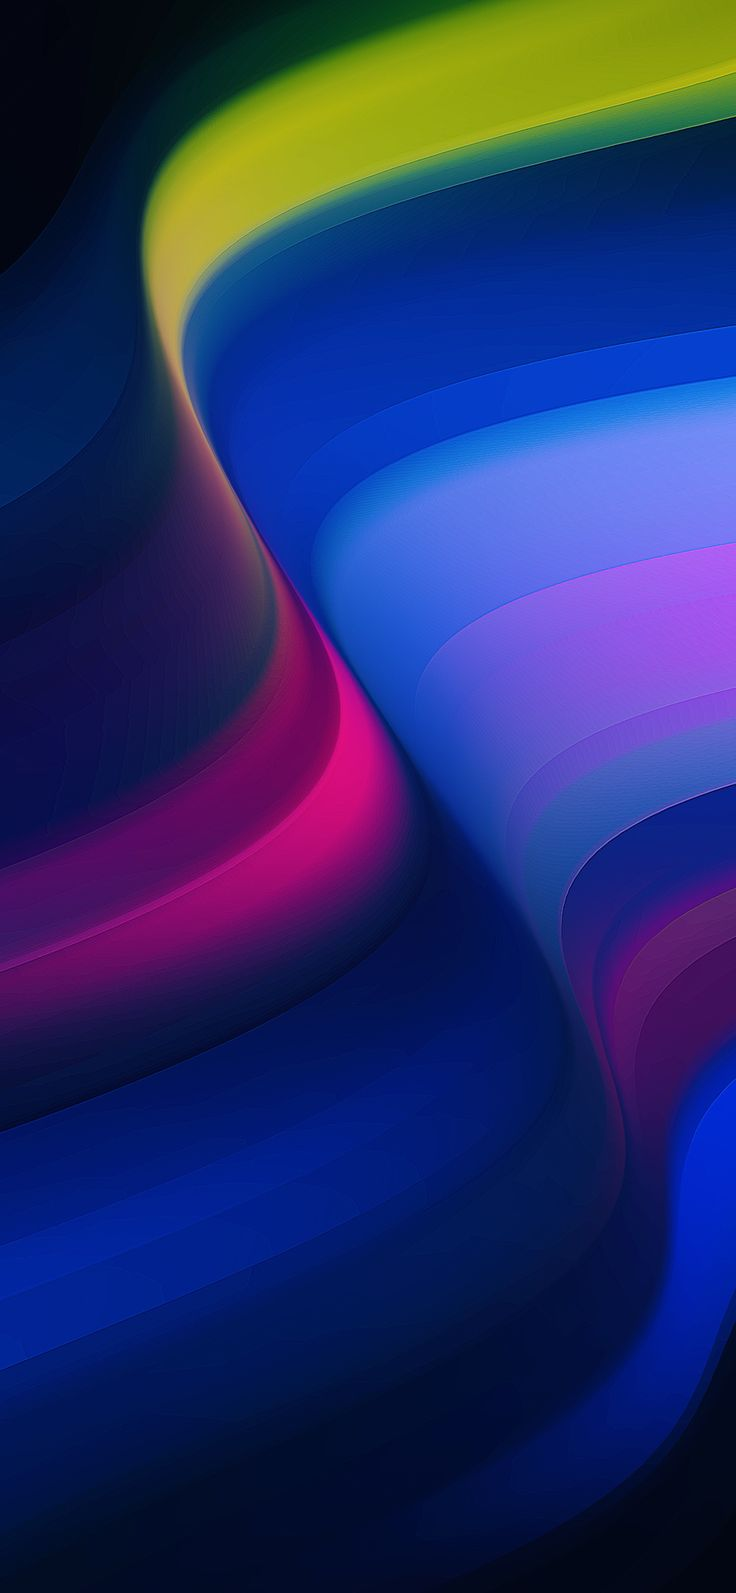 Abstract HD Wallpapers 832391943604259889 2